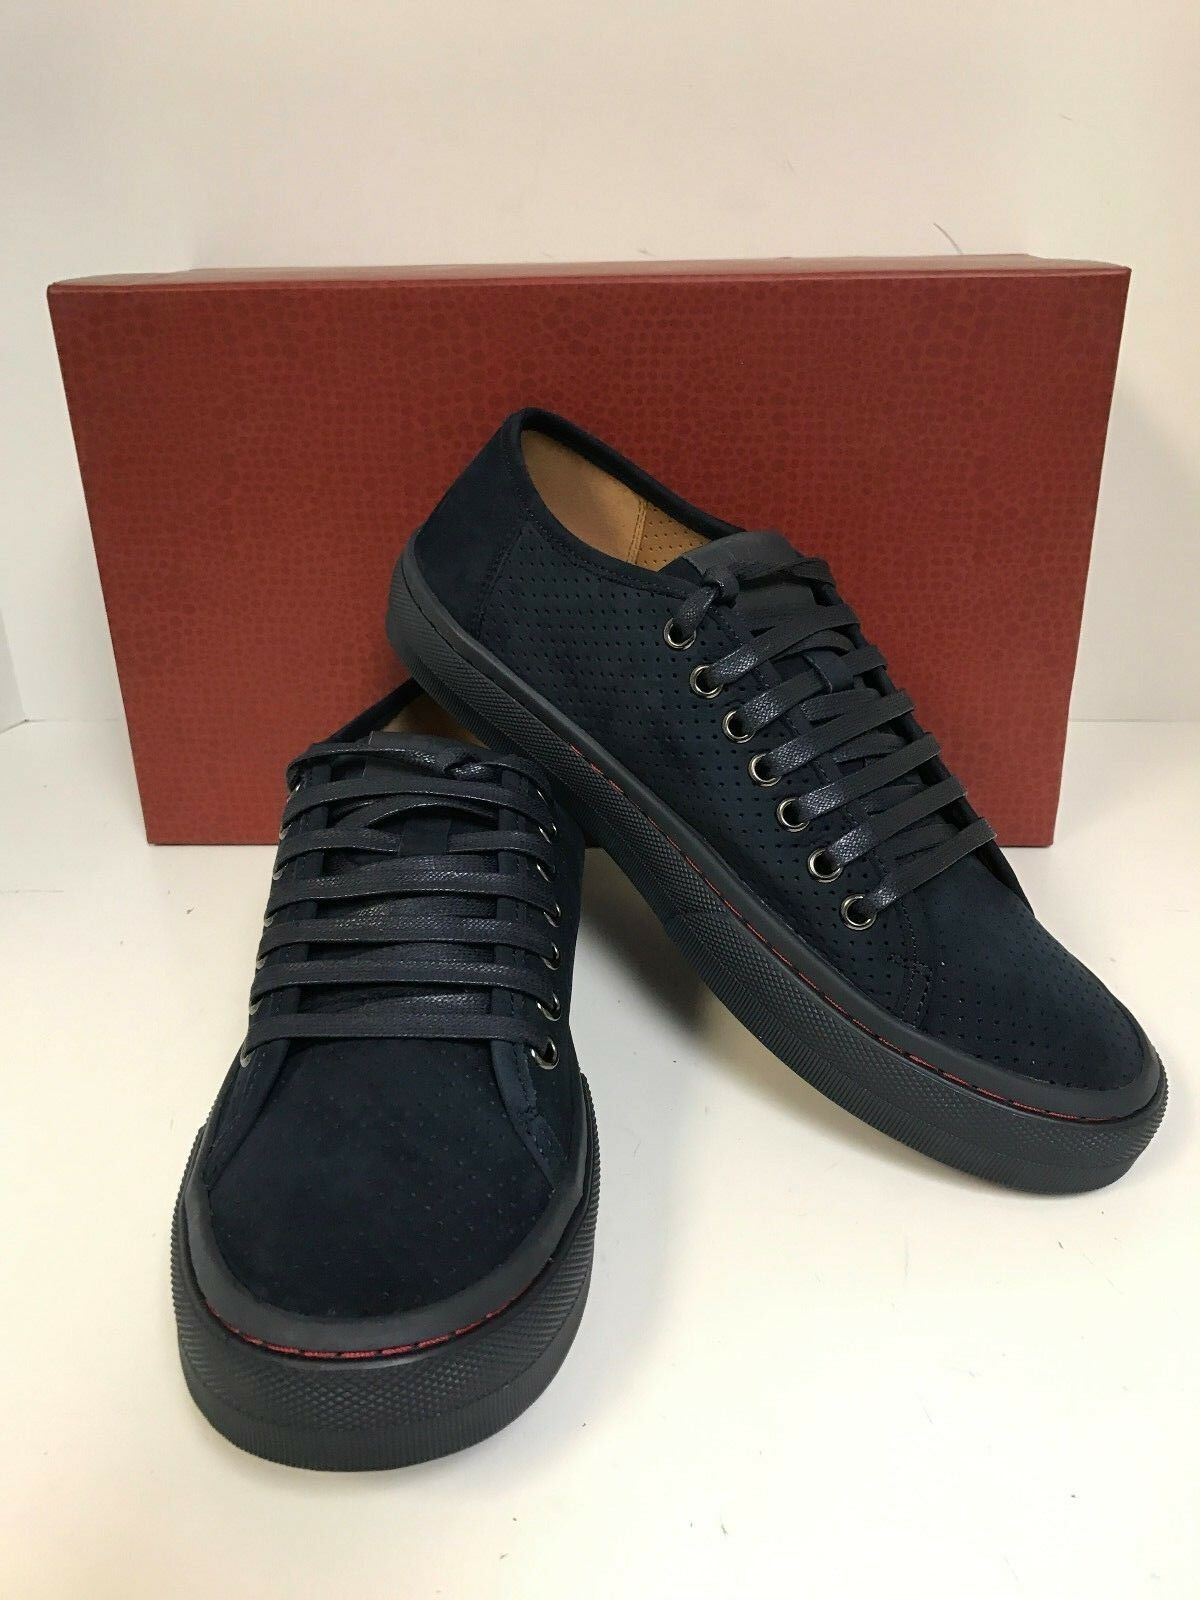 Donald Pliner Dan-TC Navy Perforated Tumbled Calf Laceup scarpe da ginnastica